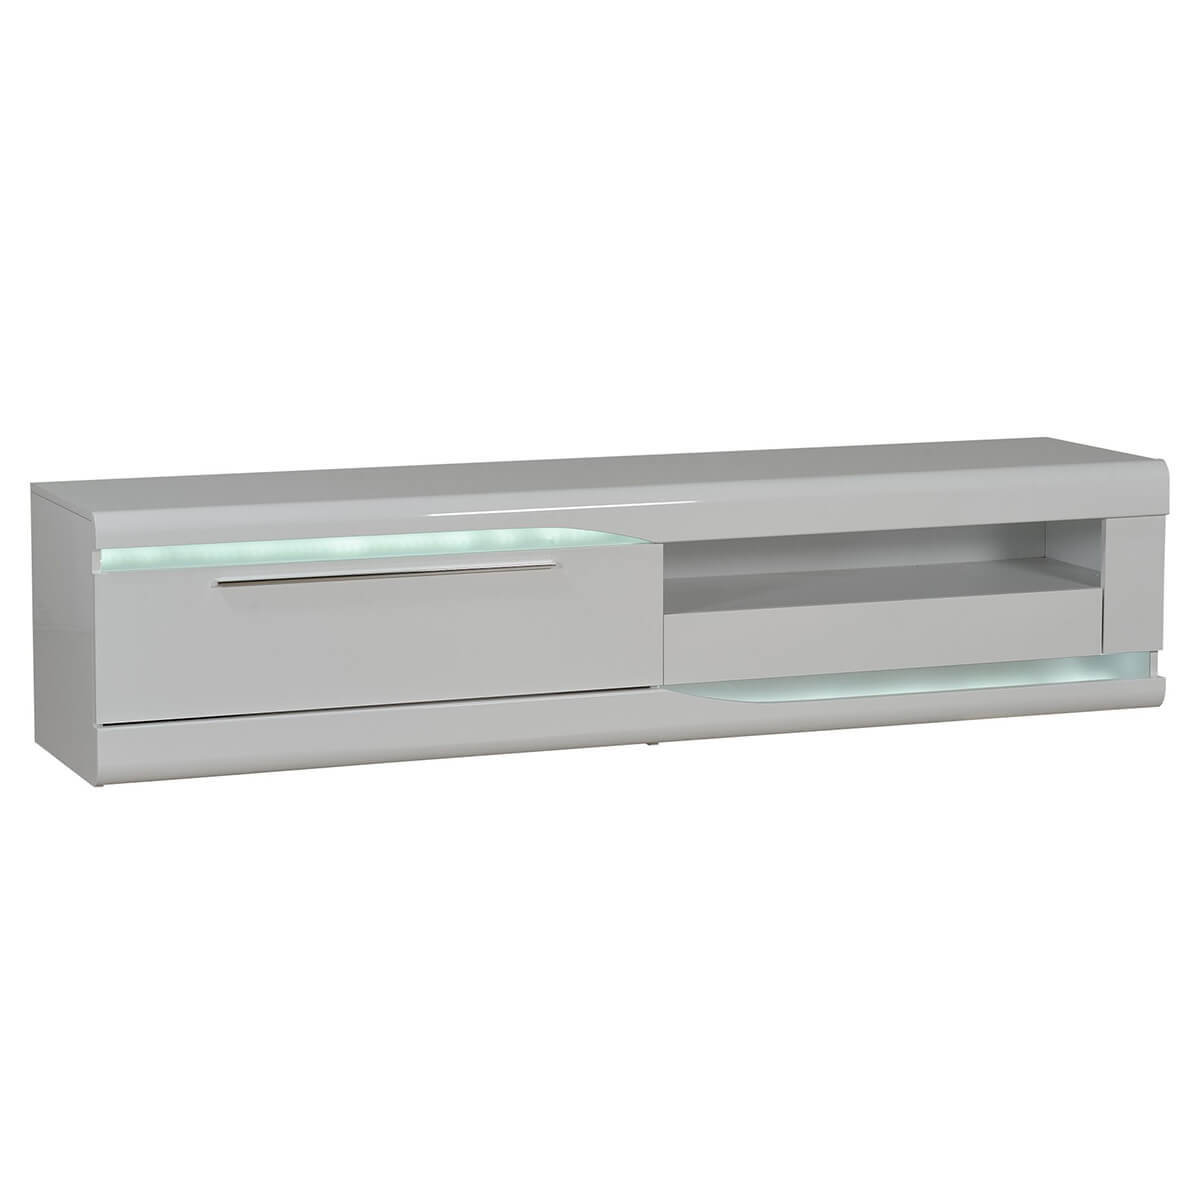 Ovio TV Unit 200cm White Gloss with LED Lighting